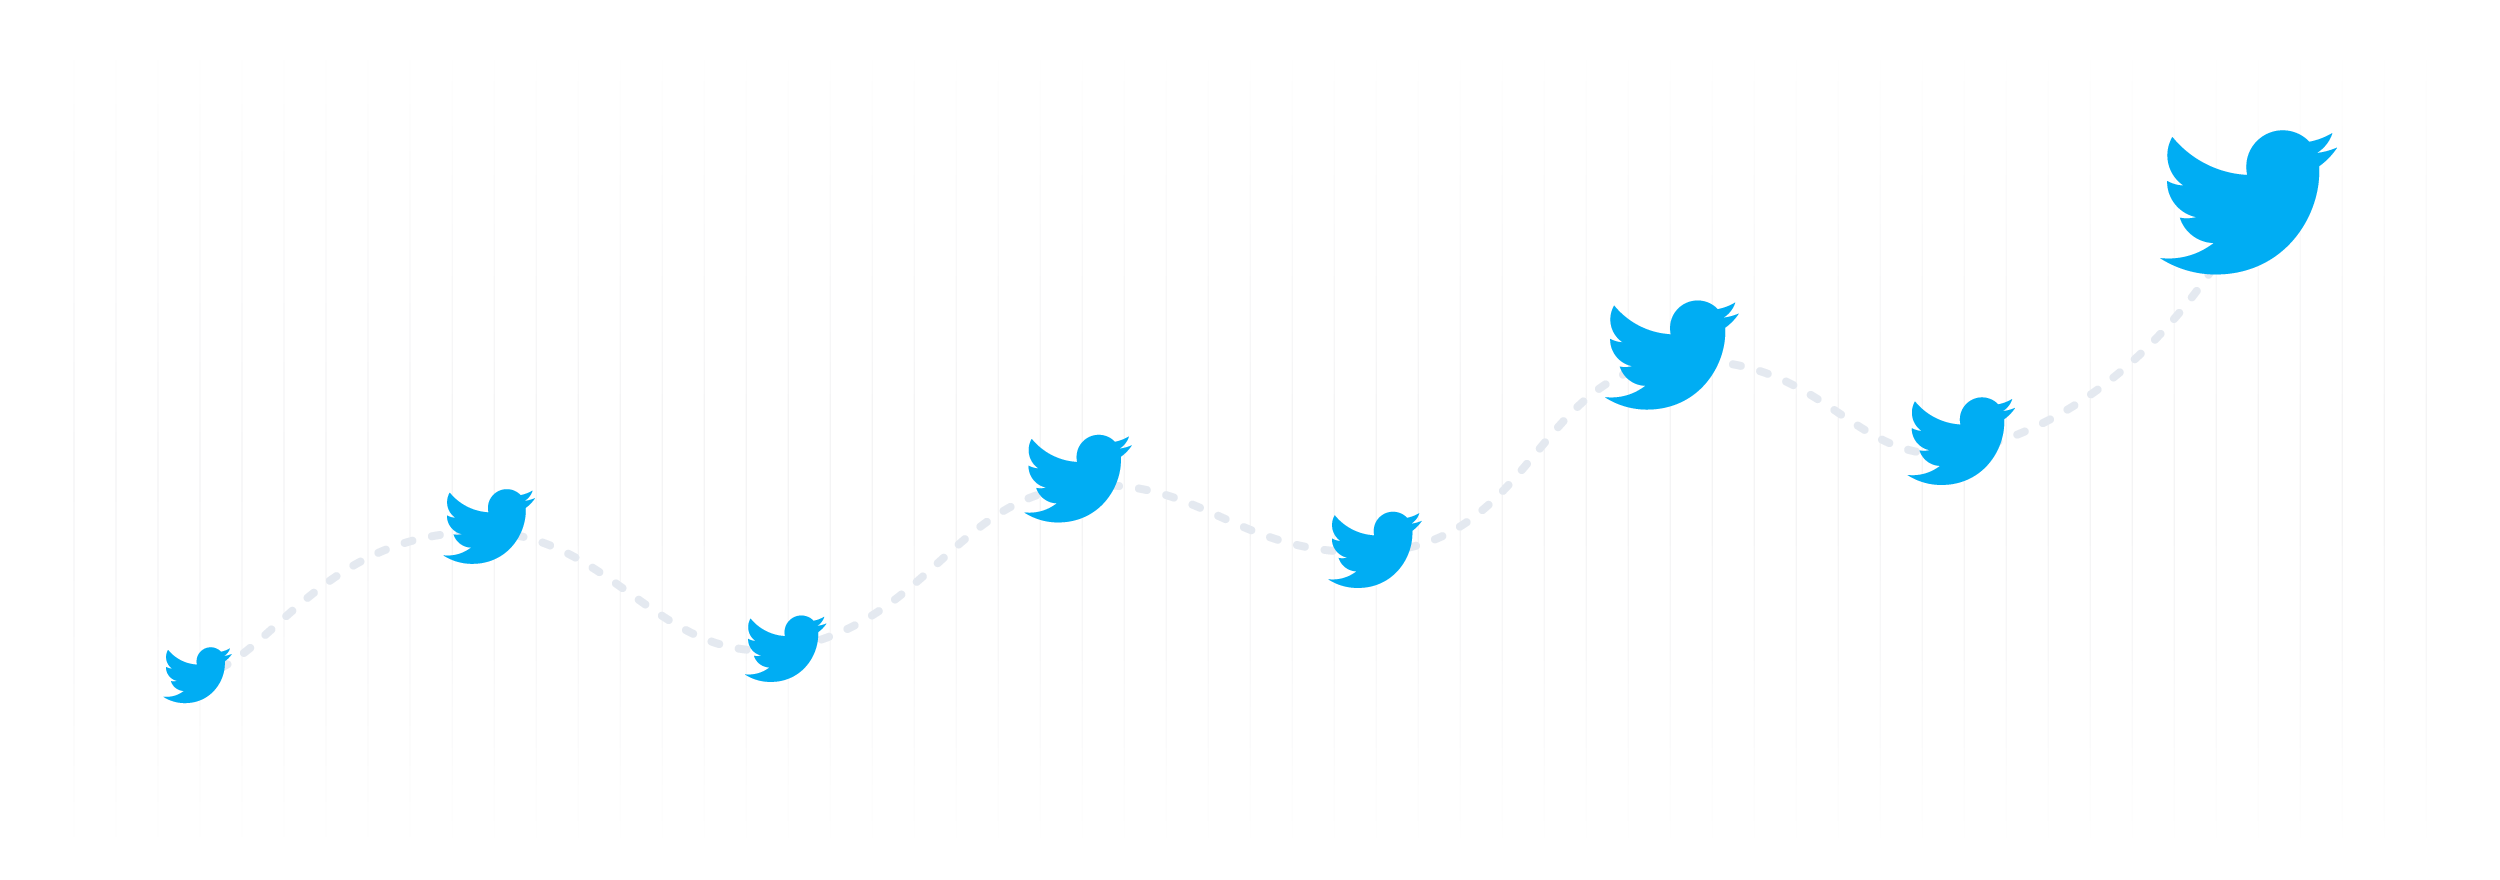 Setting Up Your First Twitter Advertising Campaign - A Step-by-Step Guide